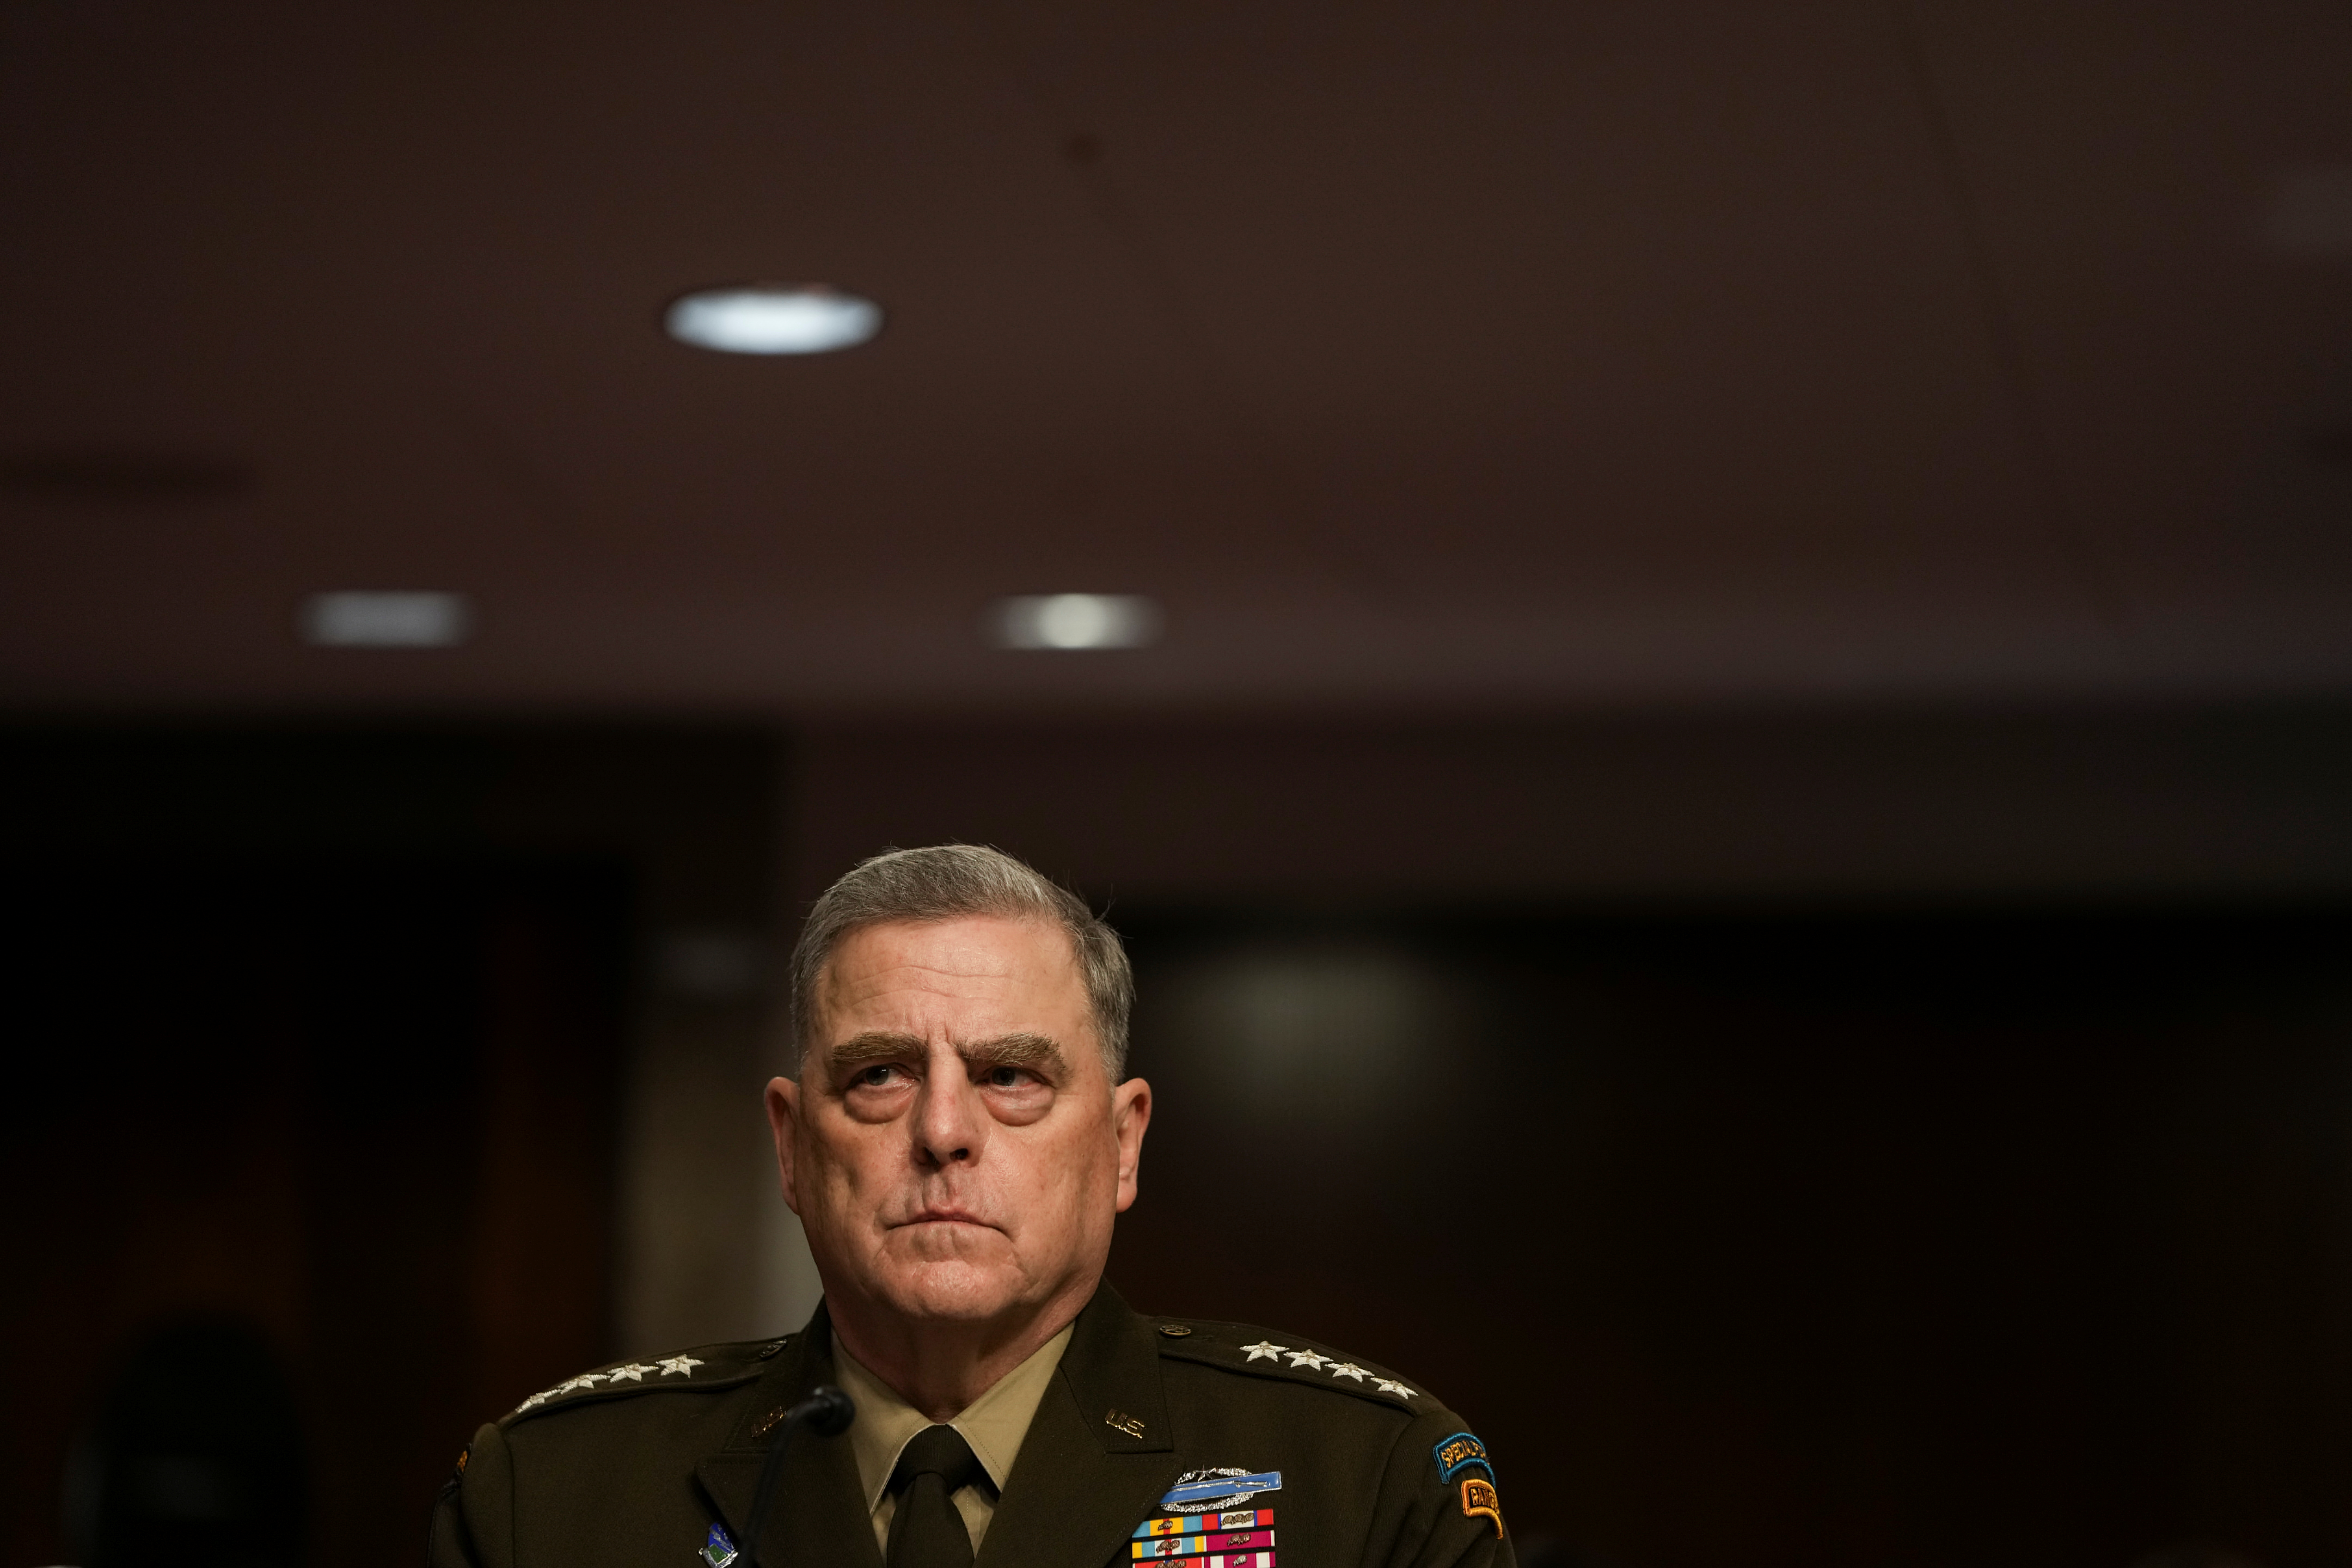 Chairman of the Joint Chiefs of Staff General Mark Milley attends a Senate Armed Services Committee hearing on the conclusion of military operations in Afghanistan and plans for future counterterrorism operations, on Capitol Hill in Washington, U.S., September 28, 2021.  Sarahbeth Maney/Pool via REUTERS